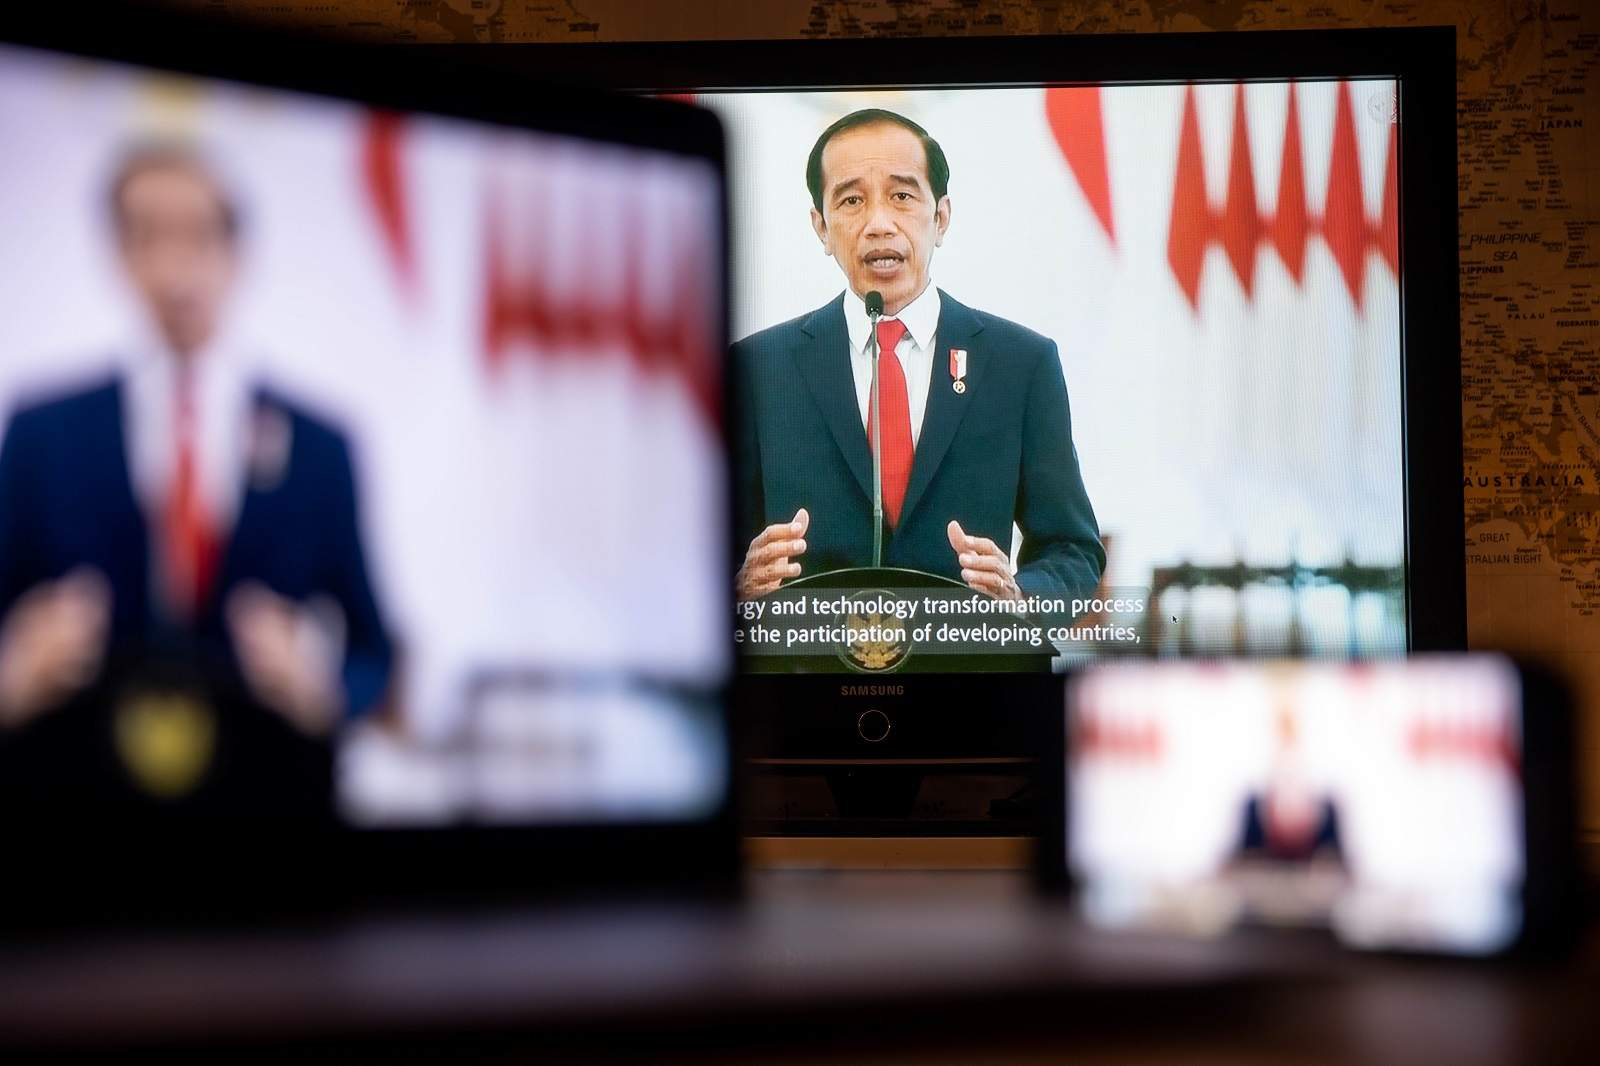 Indonesian President Joko Widodo speaks at the UN General Assembly meeting via live stream in New York, 22 September 2021 (Michael Nagle/Bloomberg via Getty Images)